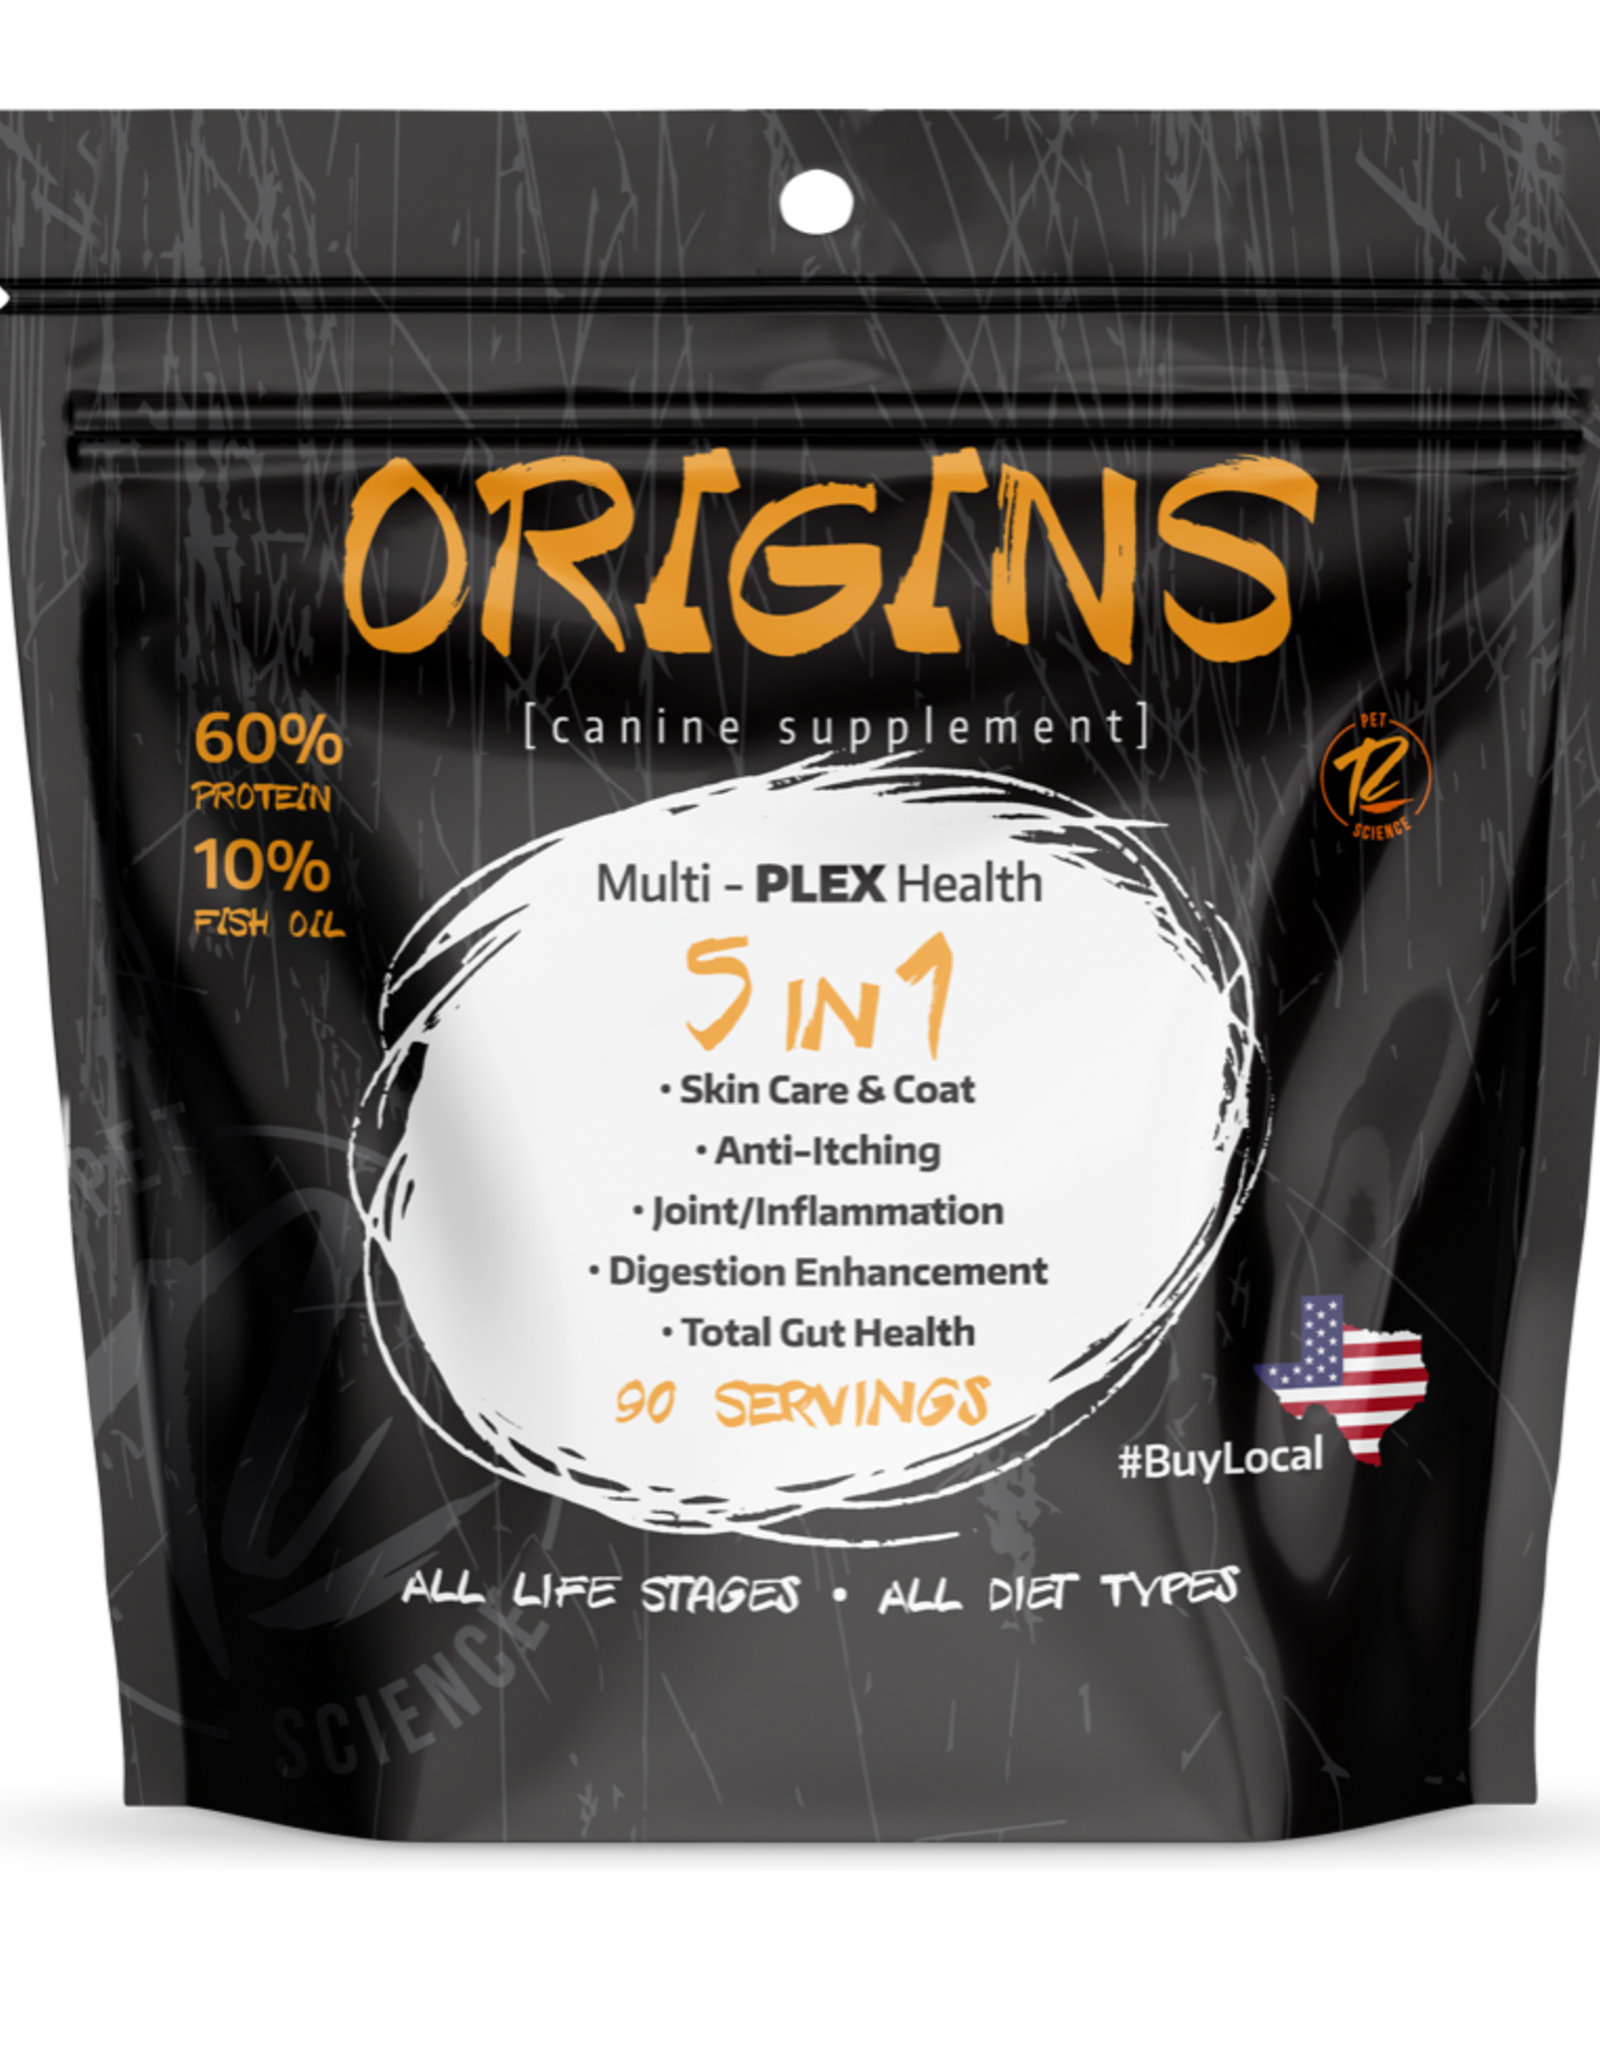 Origins Canine Supplement